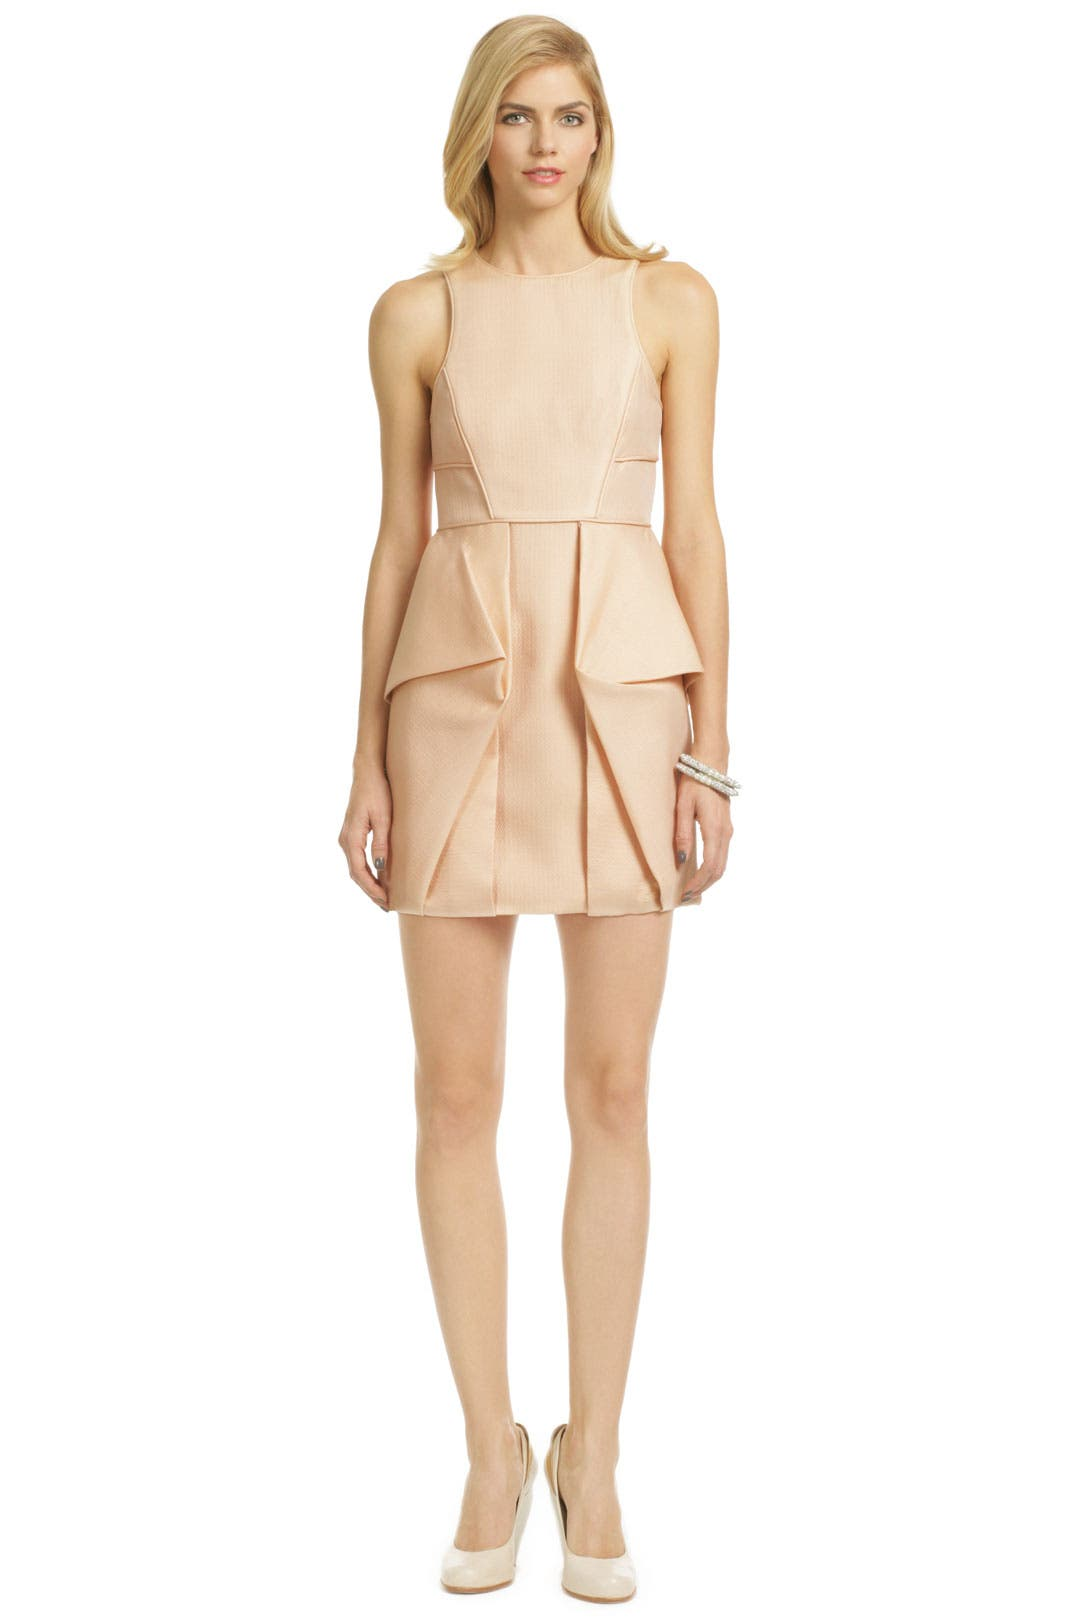 Make You Mine Dress by Tibi